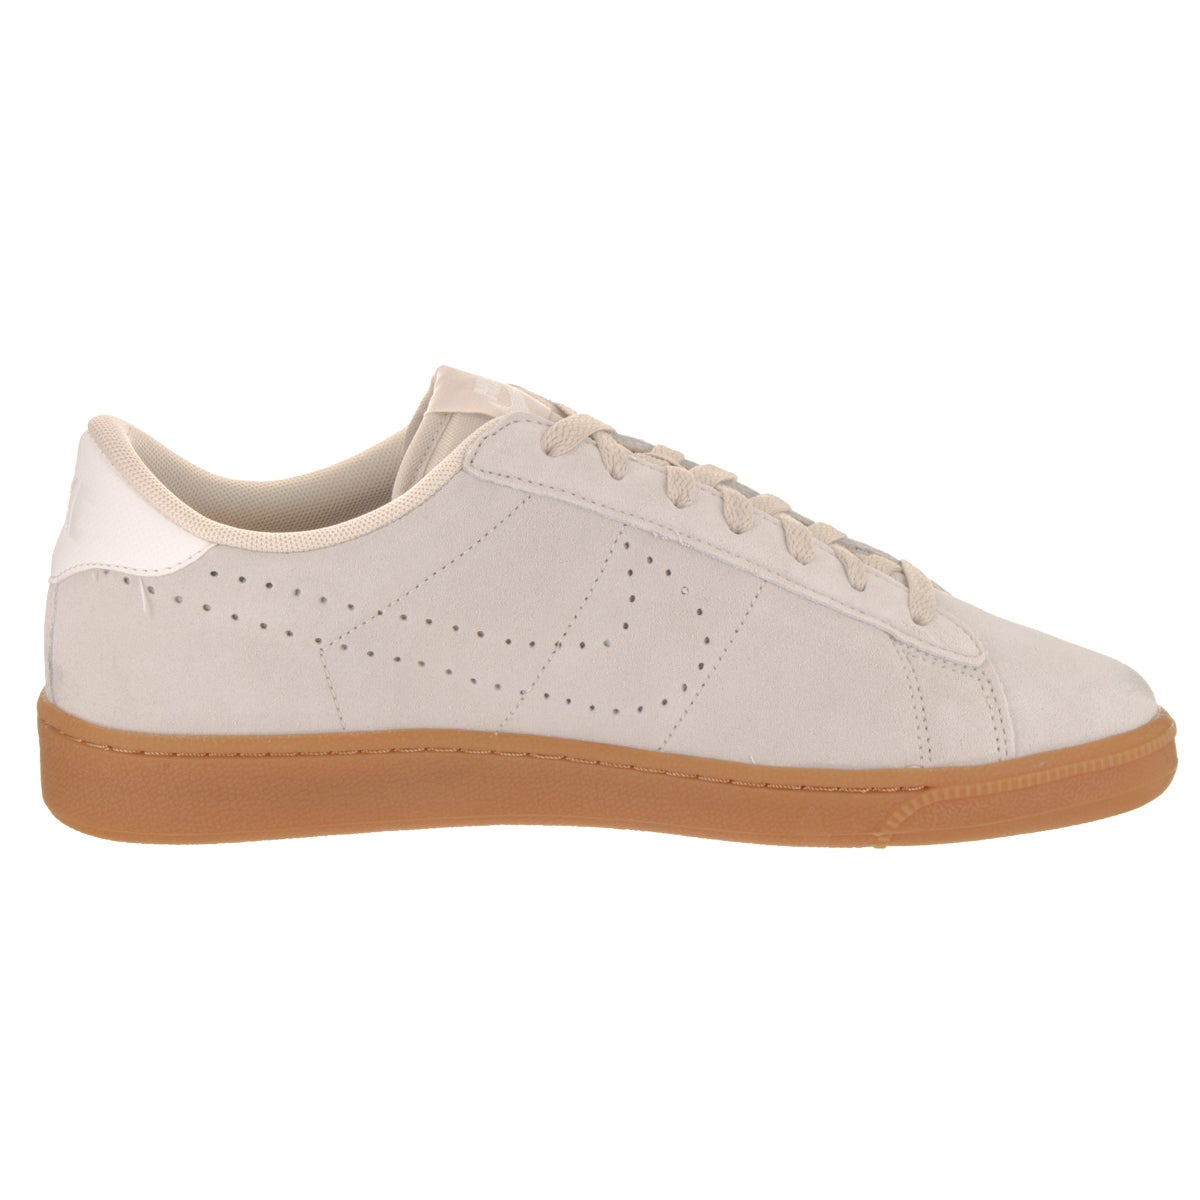 differently 31808 f30d5 Shop Nike Men s Tennis Classic CS Suede Tennis Shoes - Free Shipping Today  - Overstock - 14193422